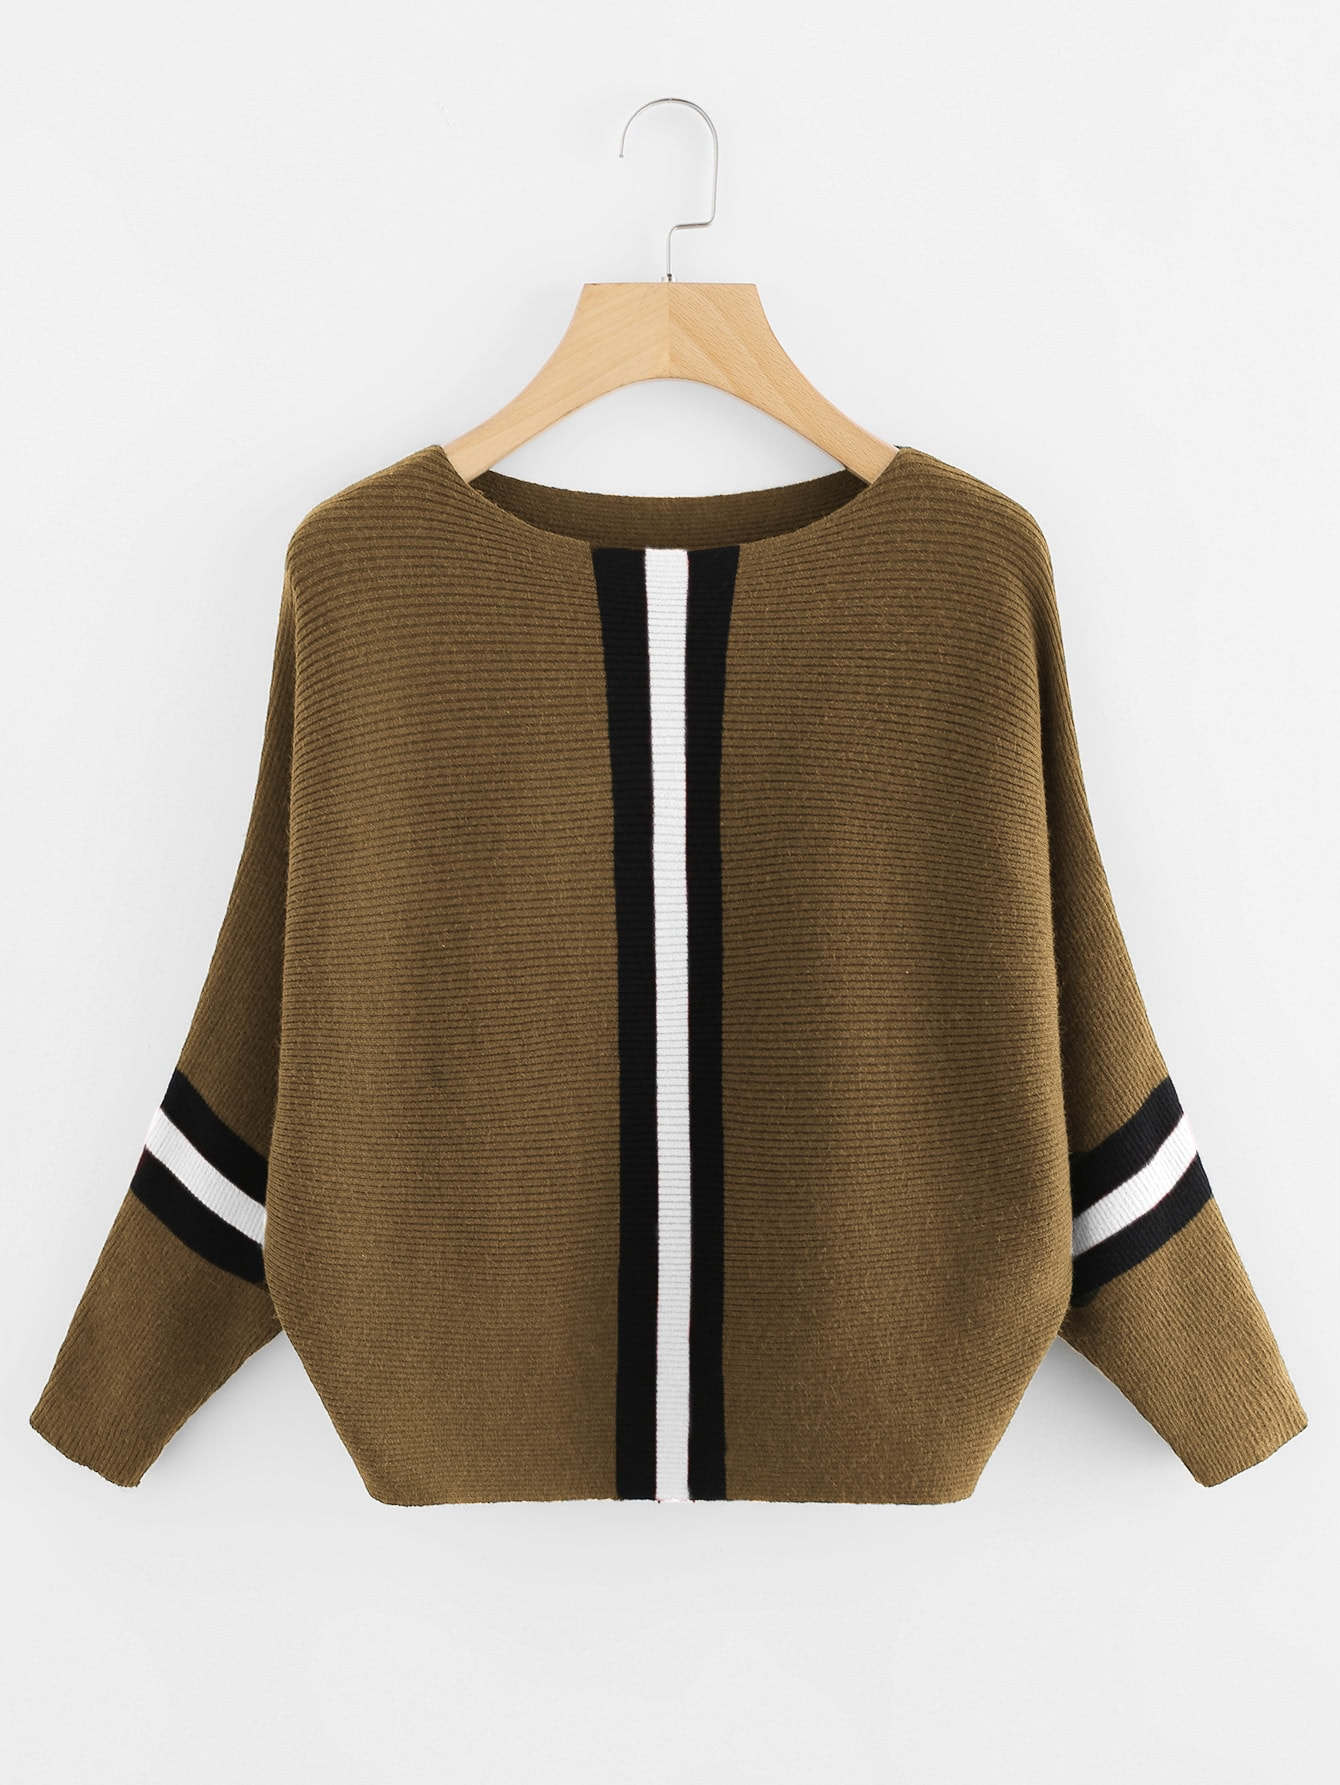 Contrast Striped Panel Ribbed Sweater sweater171212002